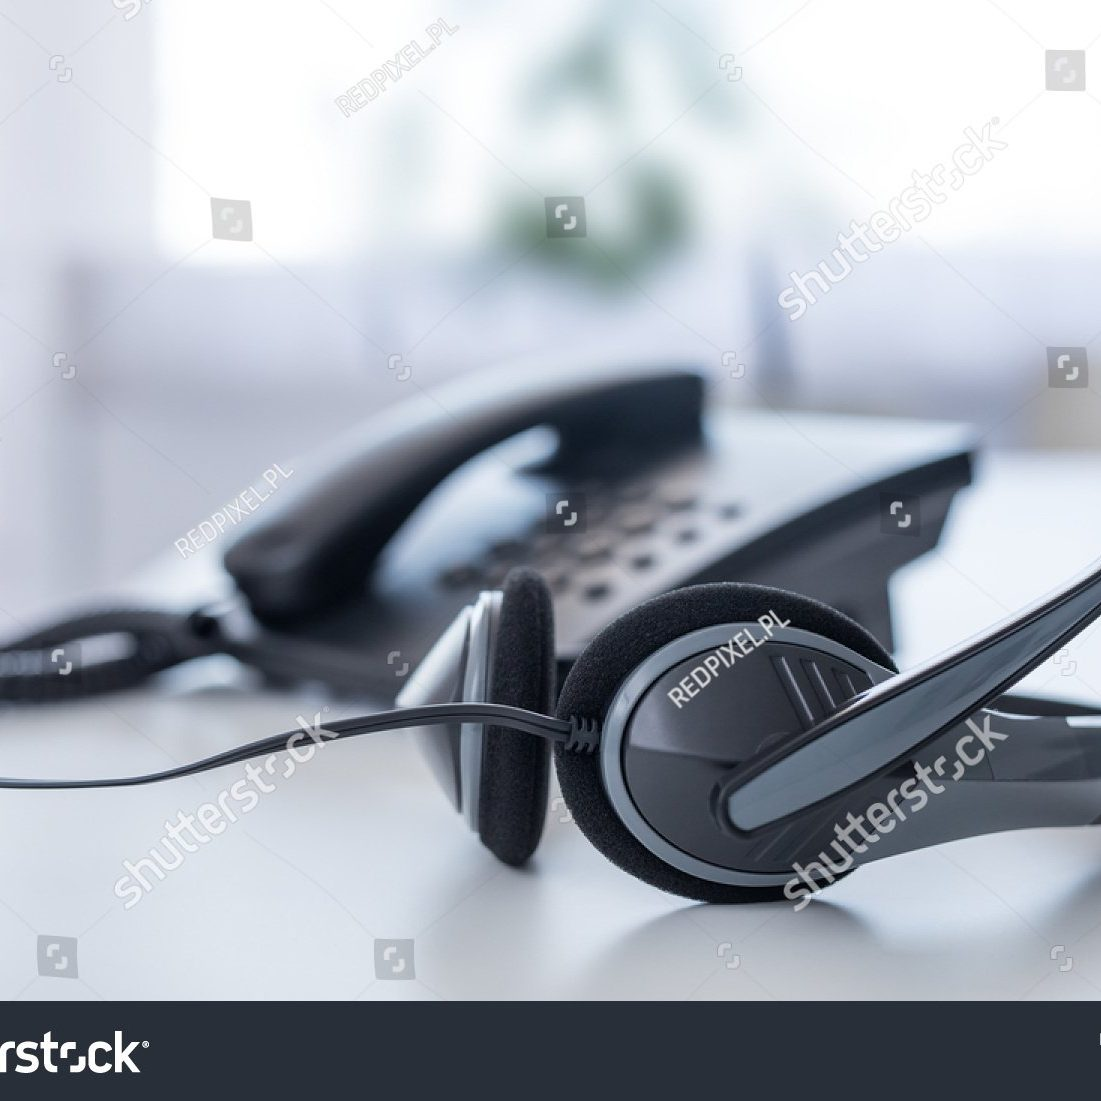 stock-photo-communication-support-call-center-and-customer-service-help-desk-voip-headset-on-laptop-computer-696061372